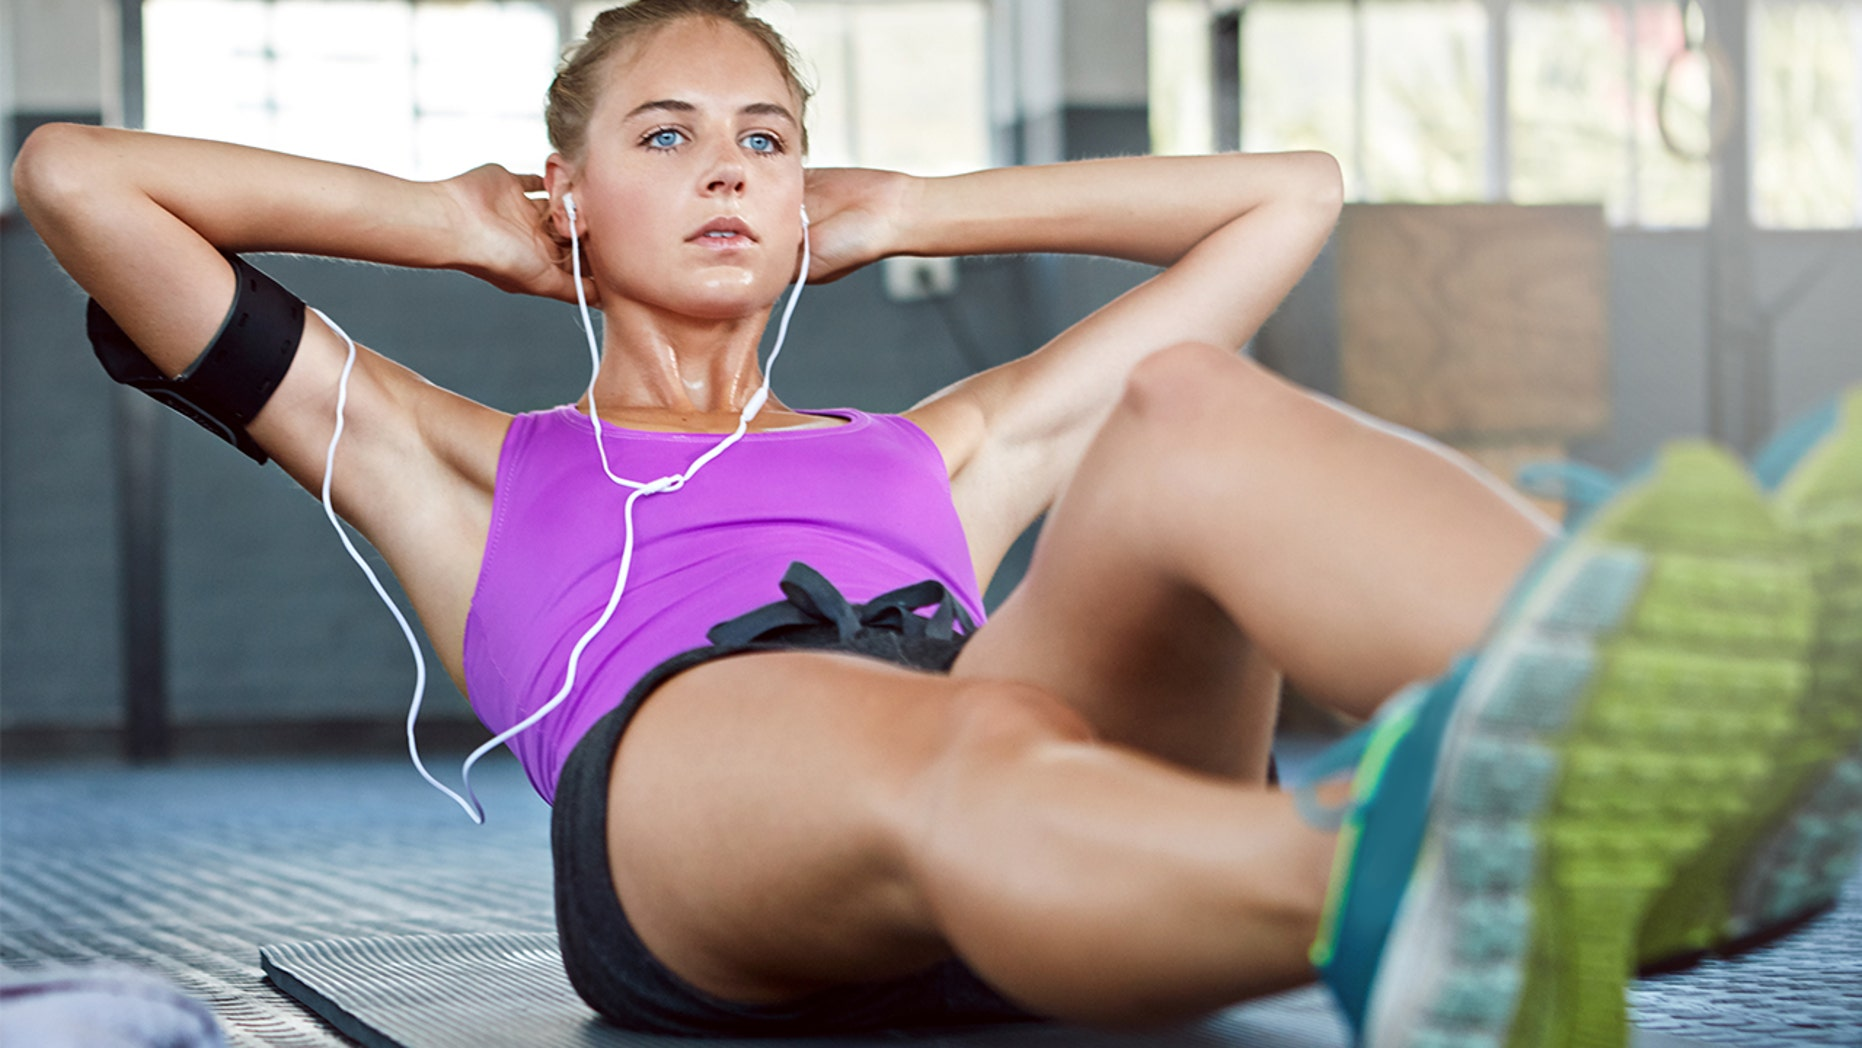 pics Exercise Obsession and When Fitness Becomes Unhealthy